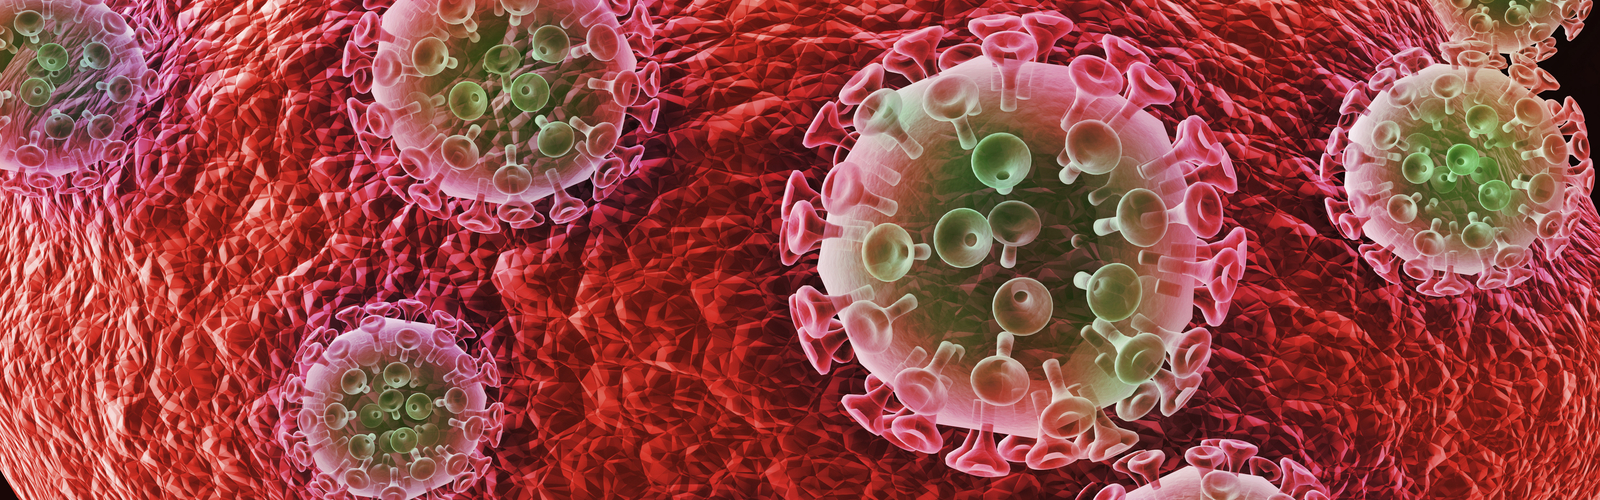 HIV virus to fight against HIV virus and more